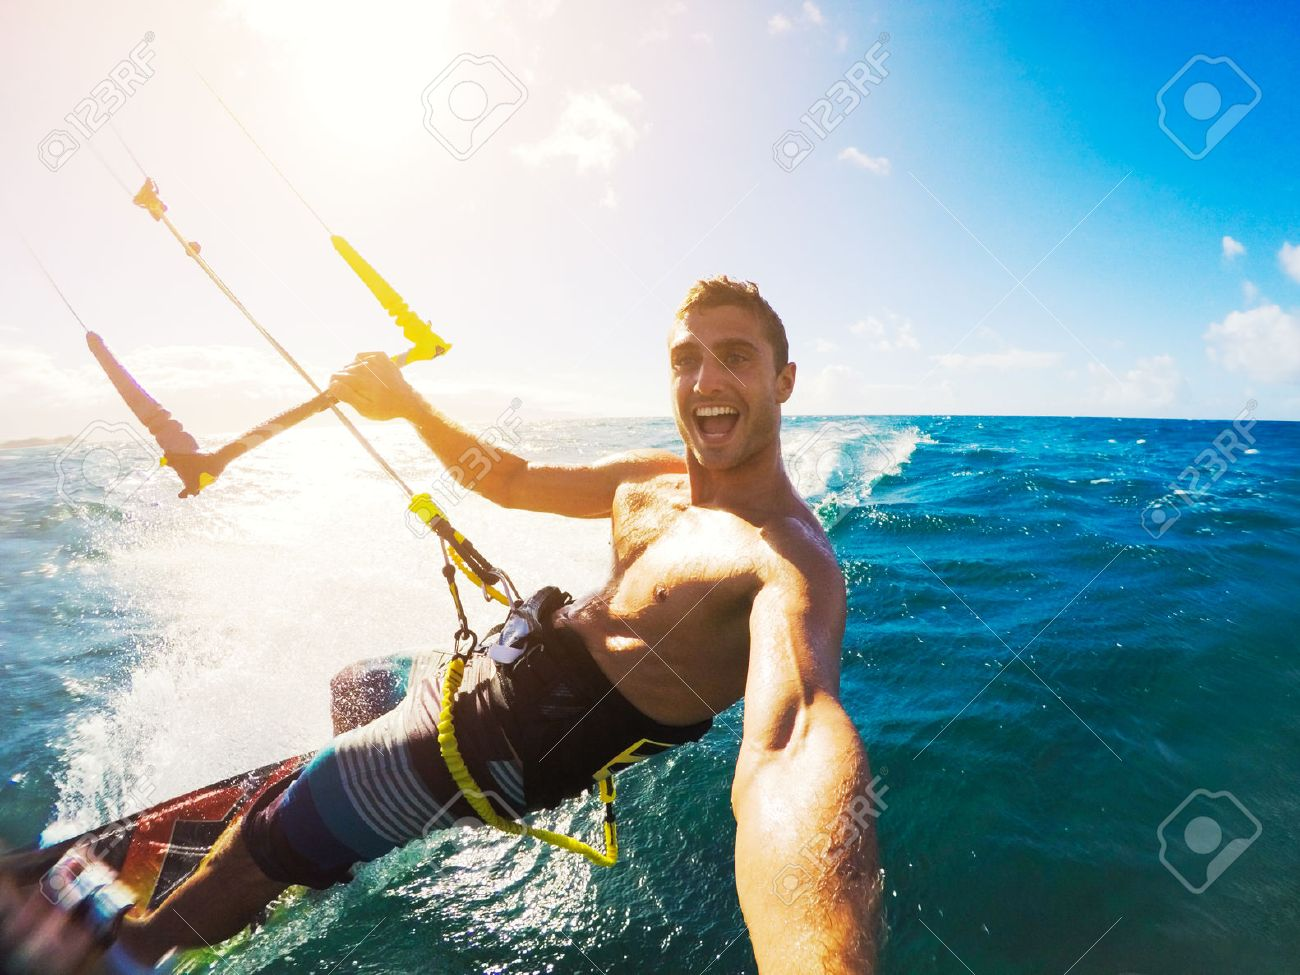 Kiteboarding. Fun in the ocean, Extreme Sport Kitesurfing. POV Angle with Action Camera Stock Photo - 43698734